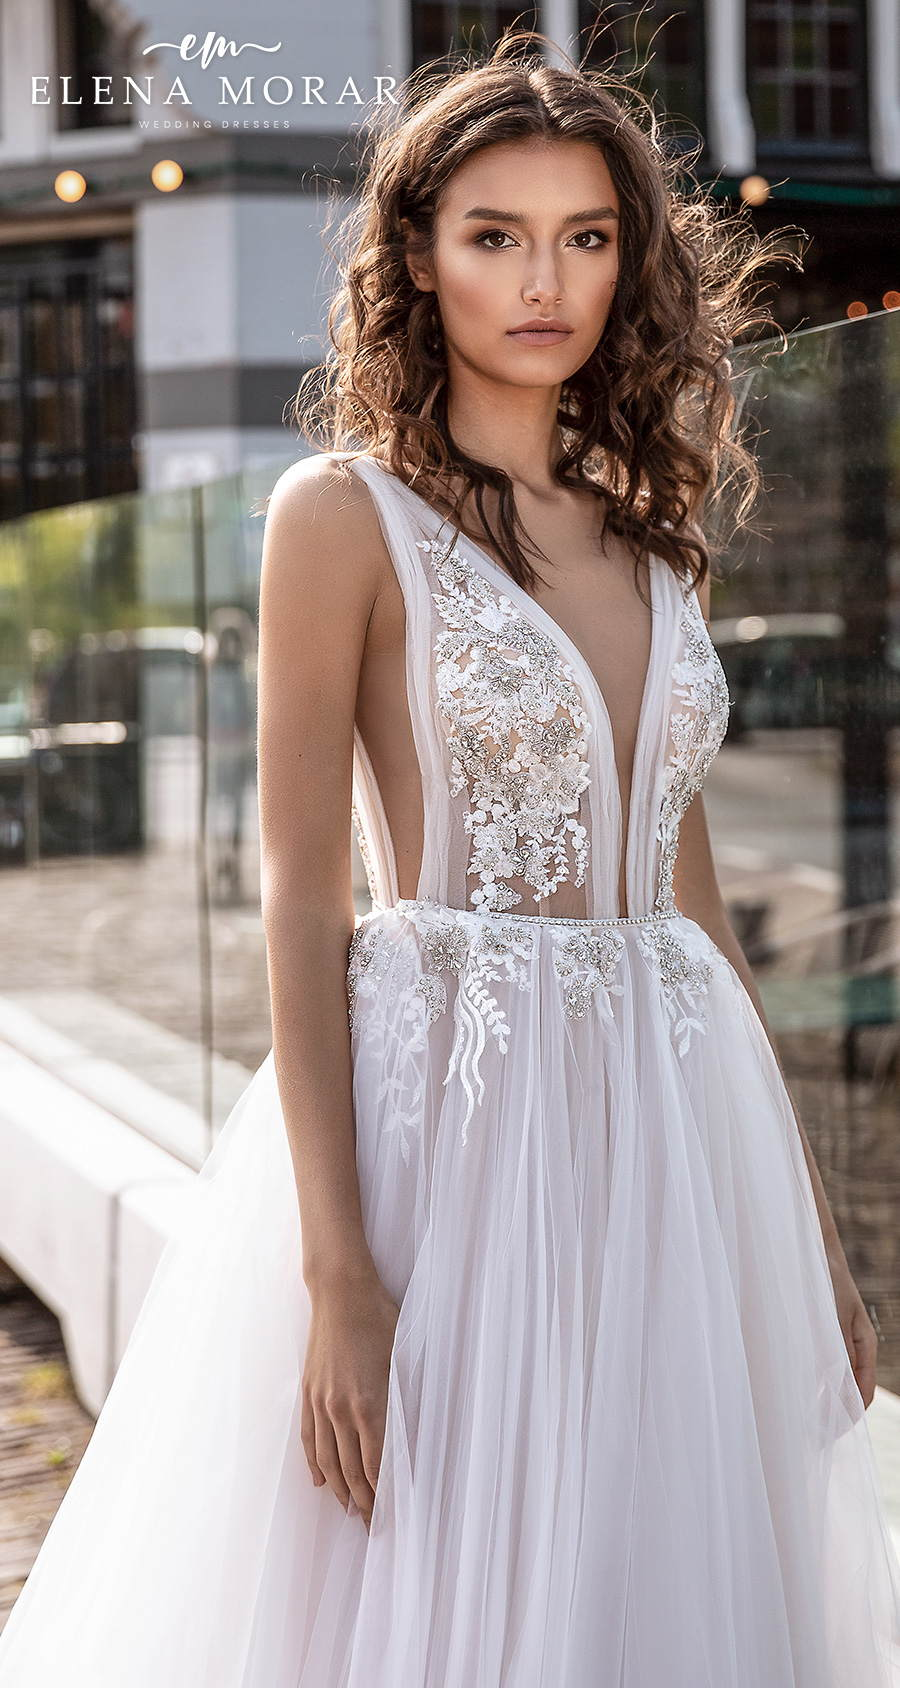 elena morar 2021 rotterdam bridal sleeveless with strap deep v neck heavily embellished bodice tulle skirt romantic soft a line wedding dress low v back sweep train (rm001) zv